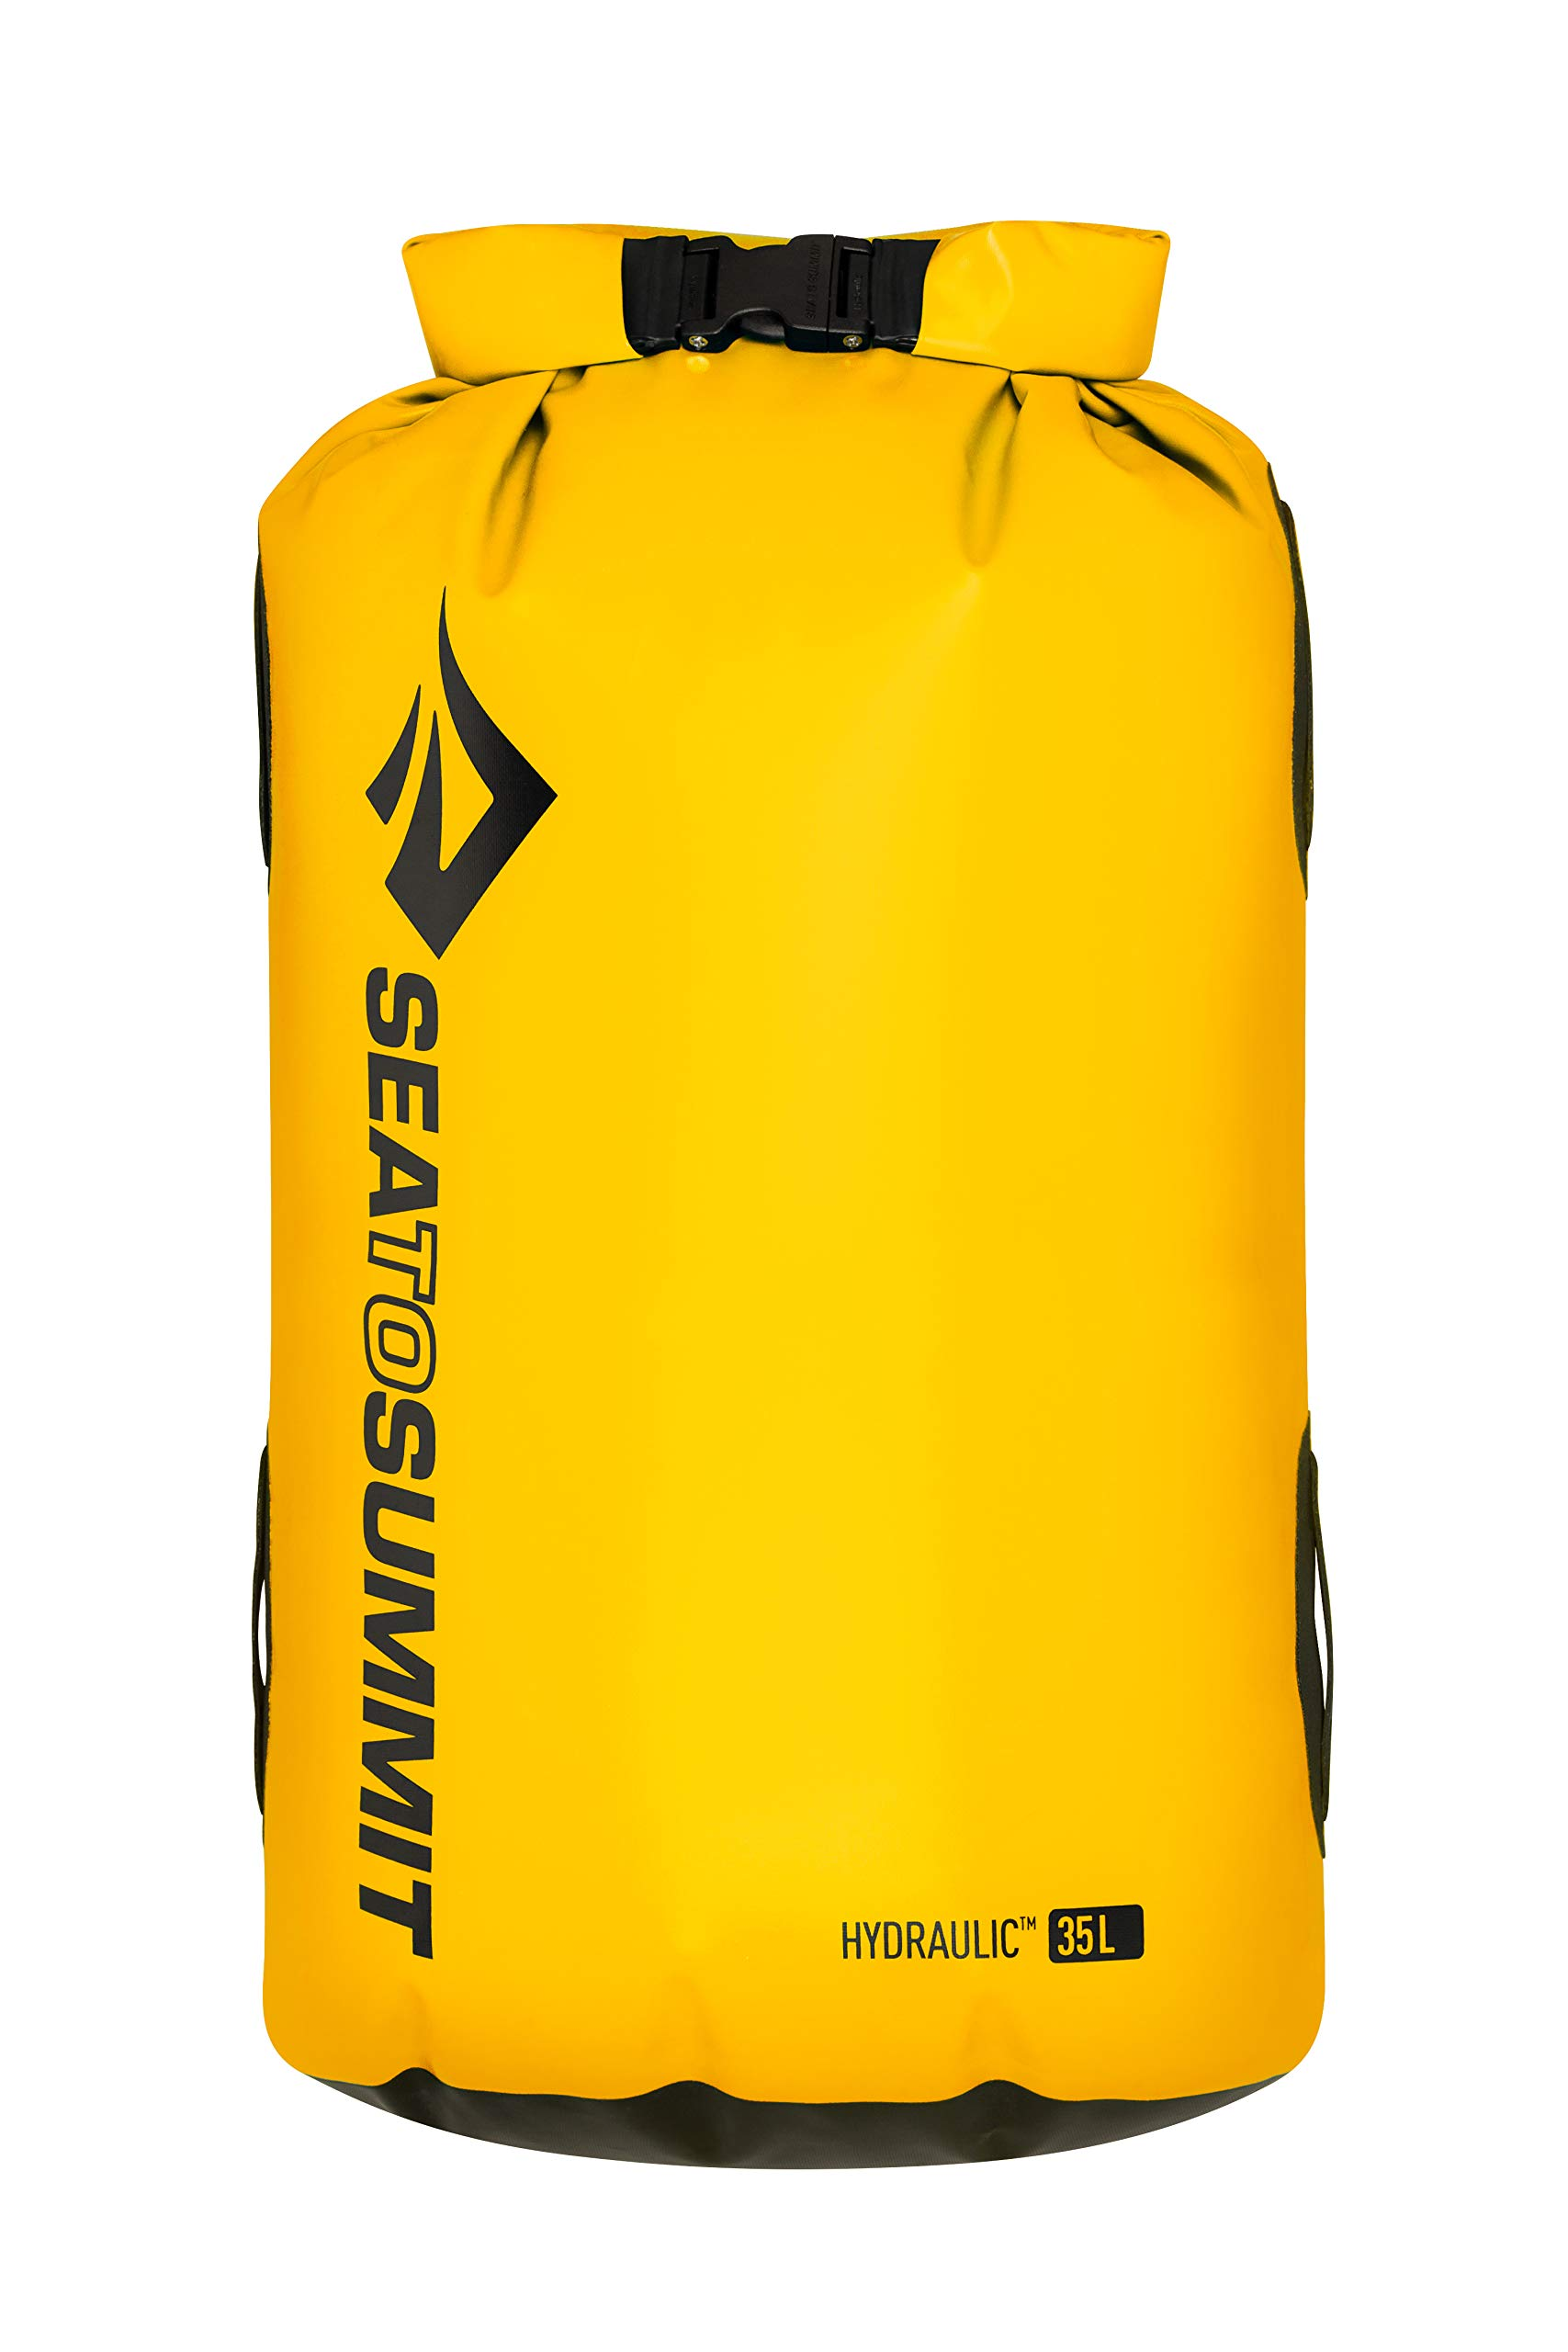 Sea to Summit Hydraulic Dry Bag - Yellow 35L by Sea to Summit